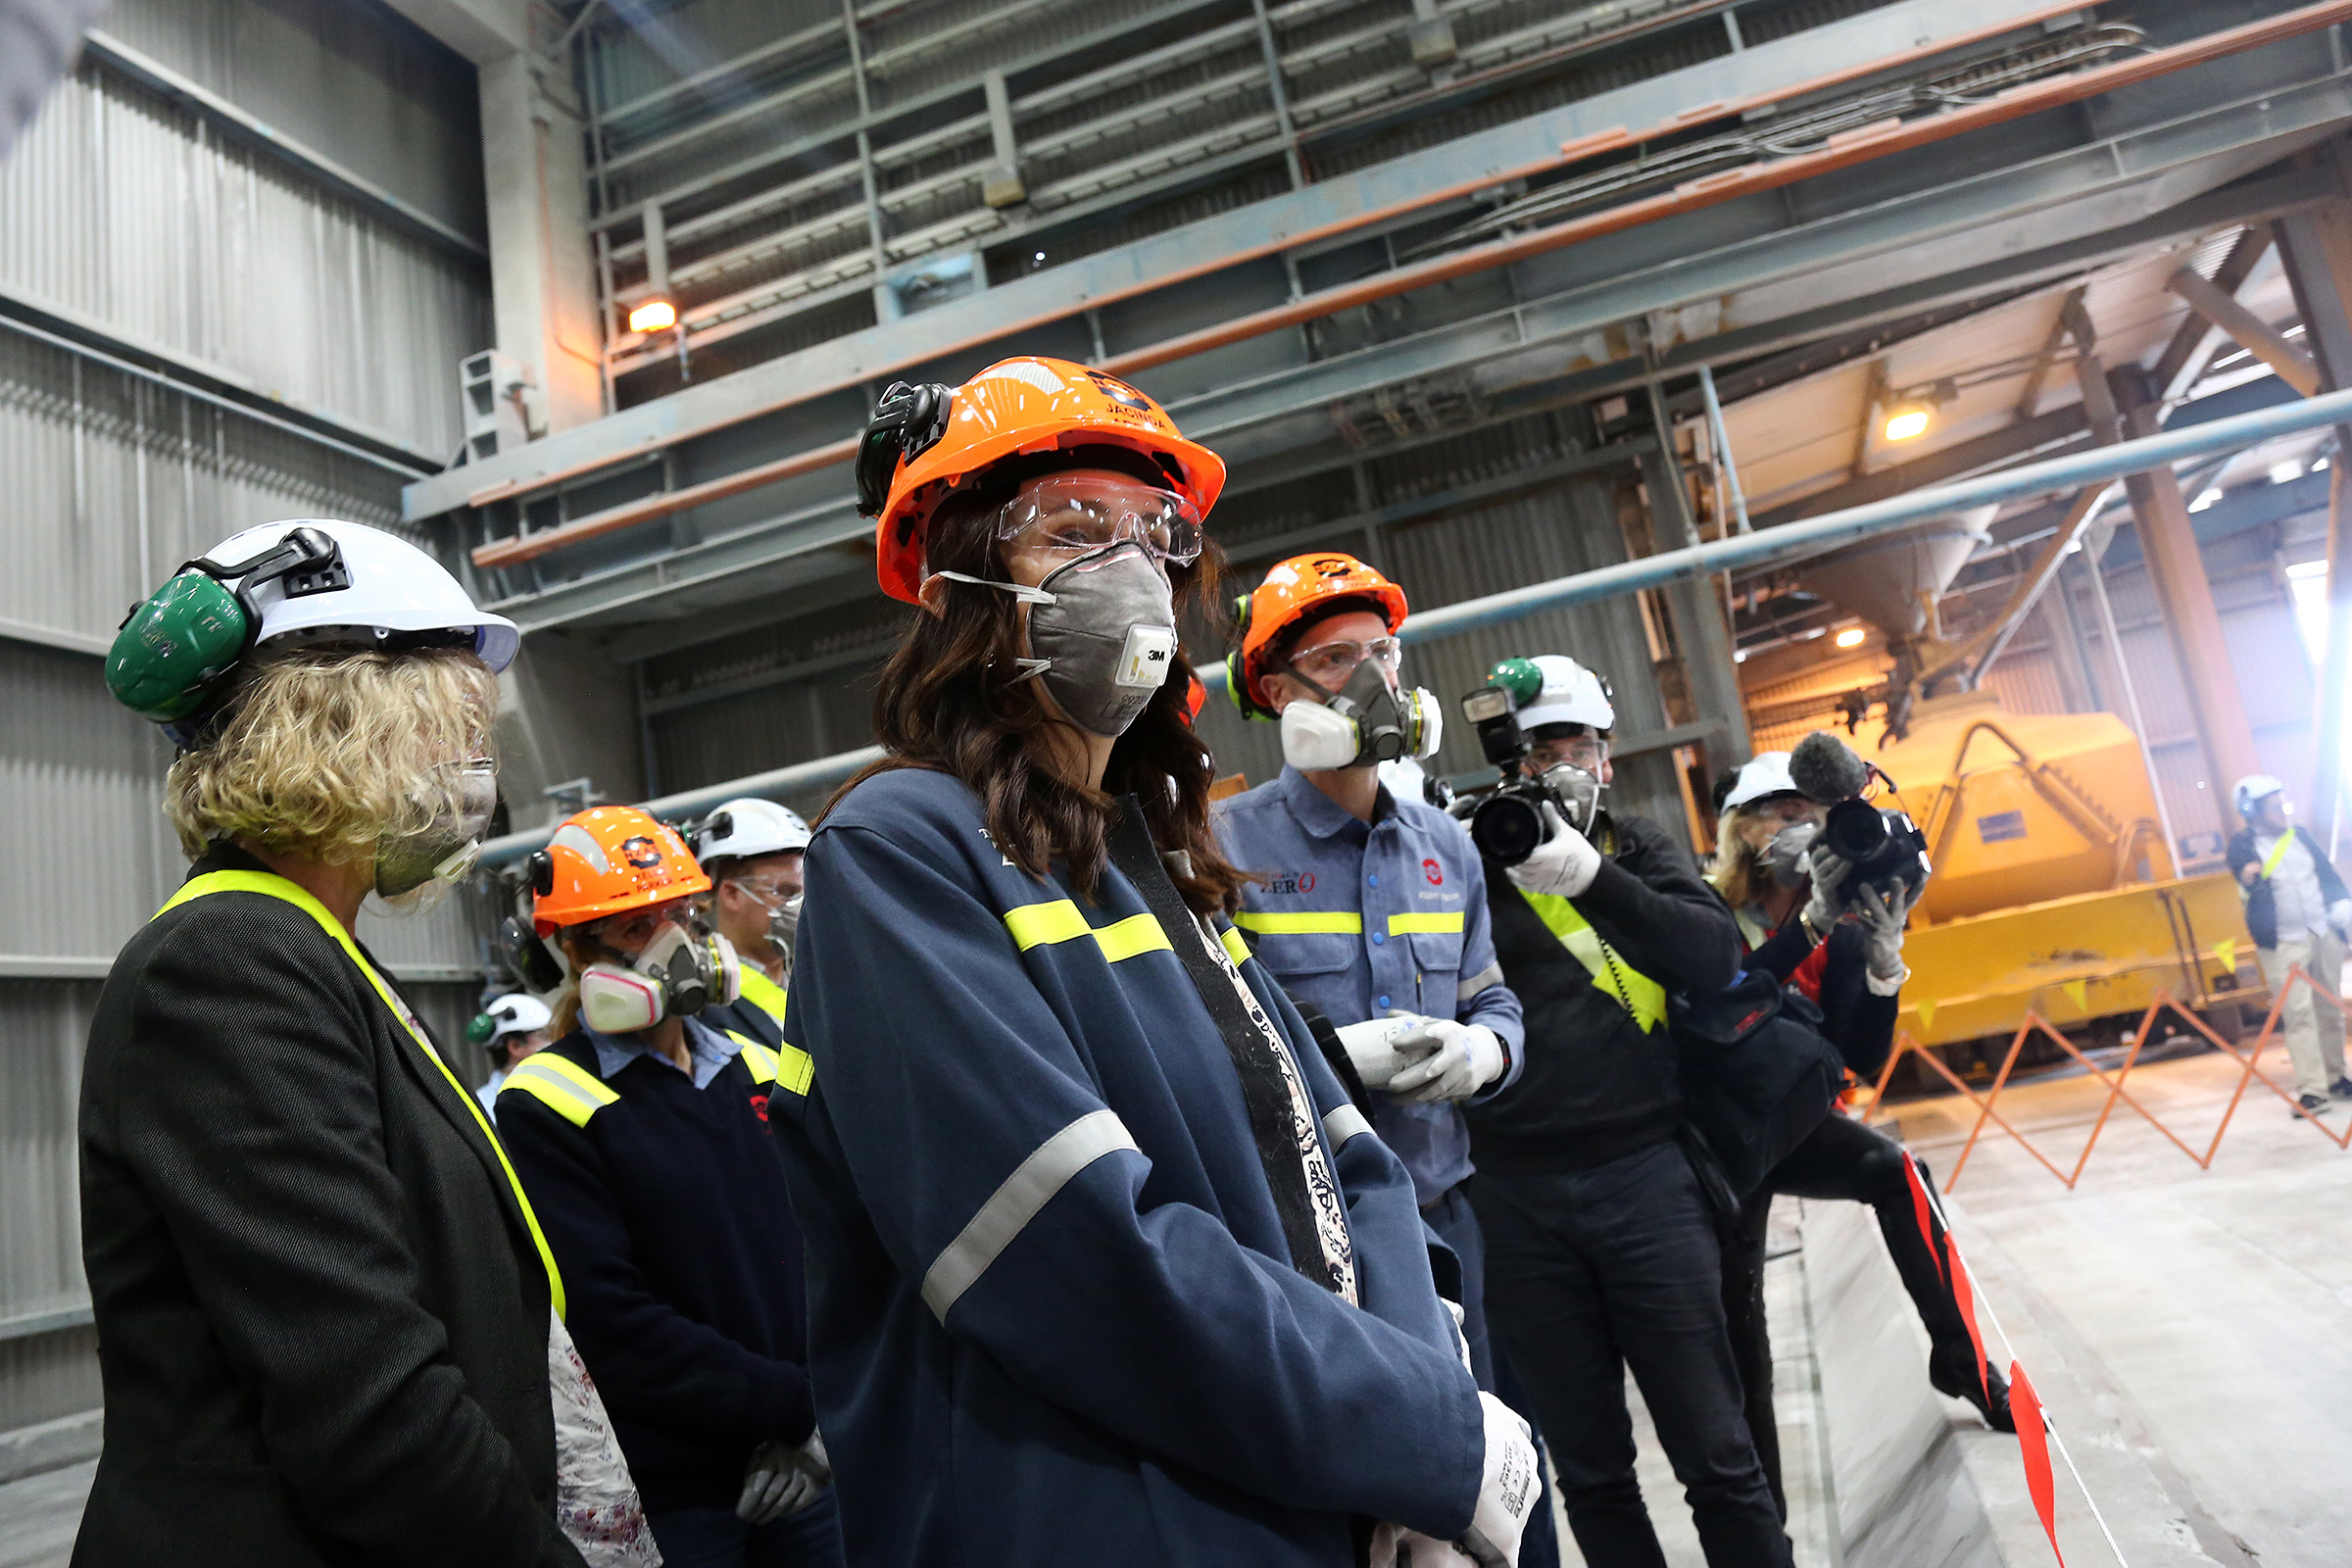 Prime Minister Jacinda Ardern visits Tiwai Point Aluminium Smelter  in Invercargill, New Zealand on Dec. 06, 2018.